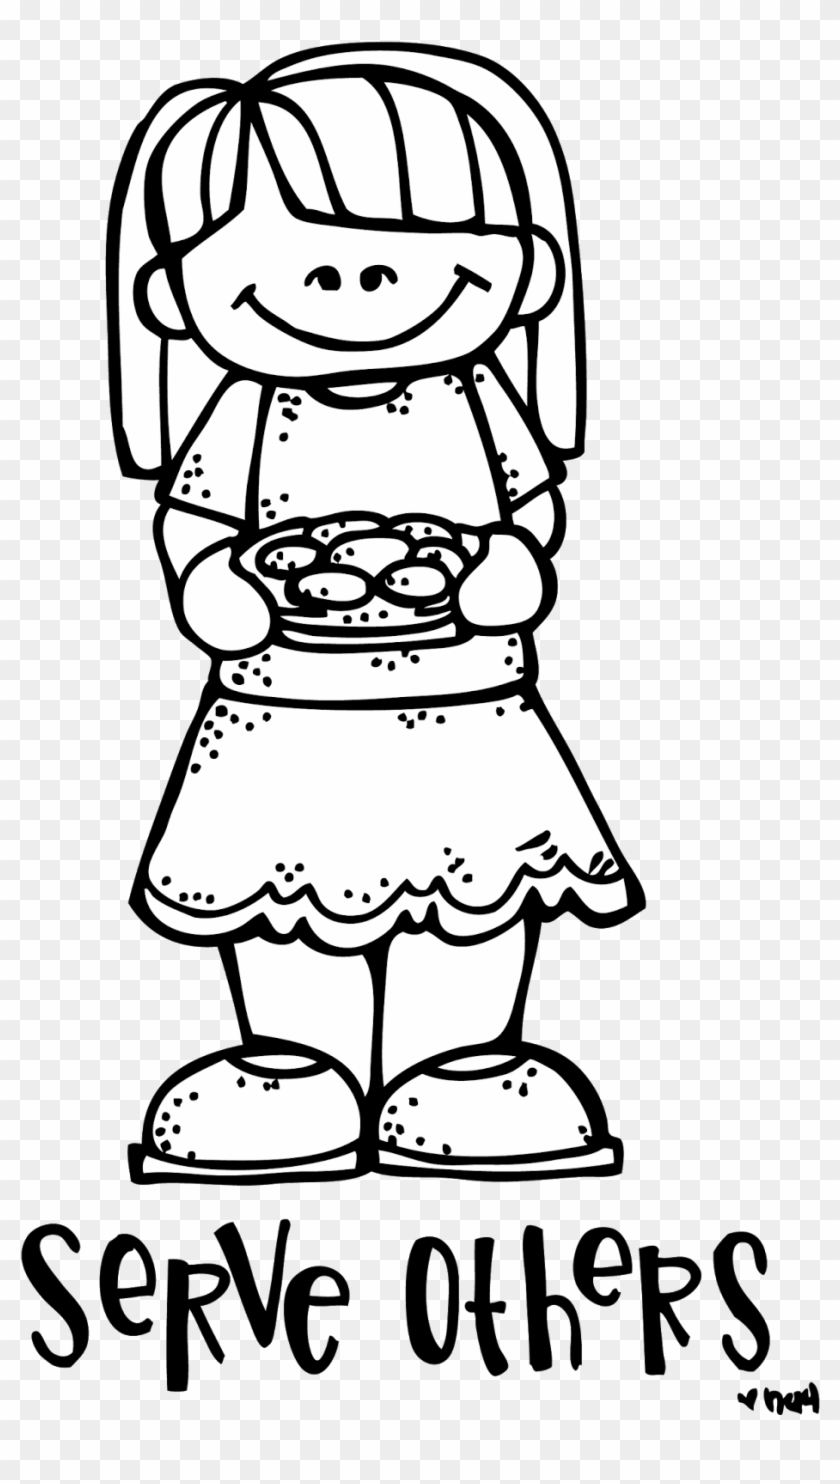 Serving Others Coloring Pages Shwepyithu Lds Primary Help Others